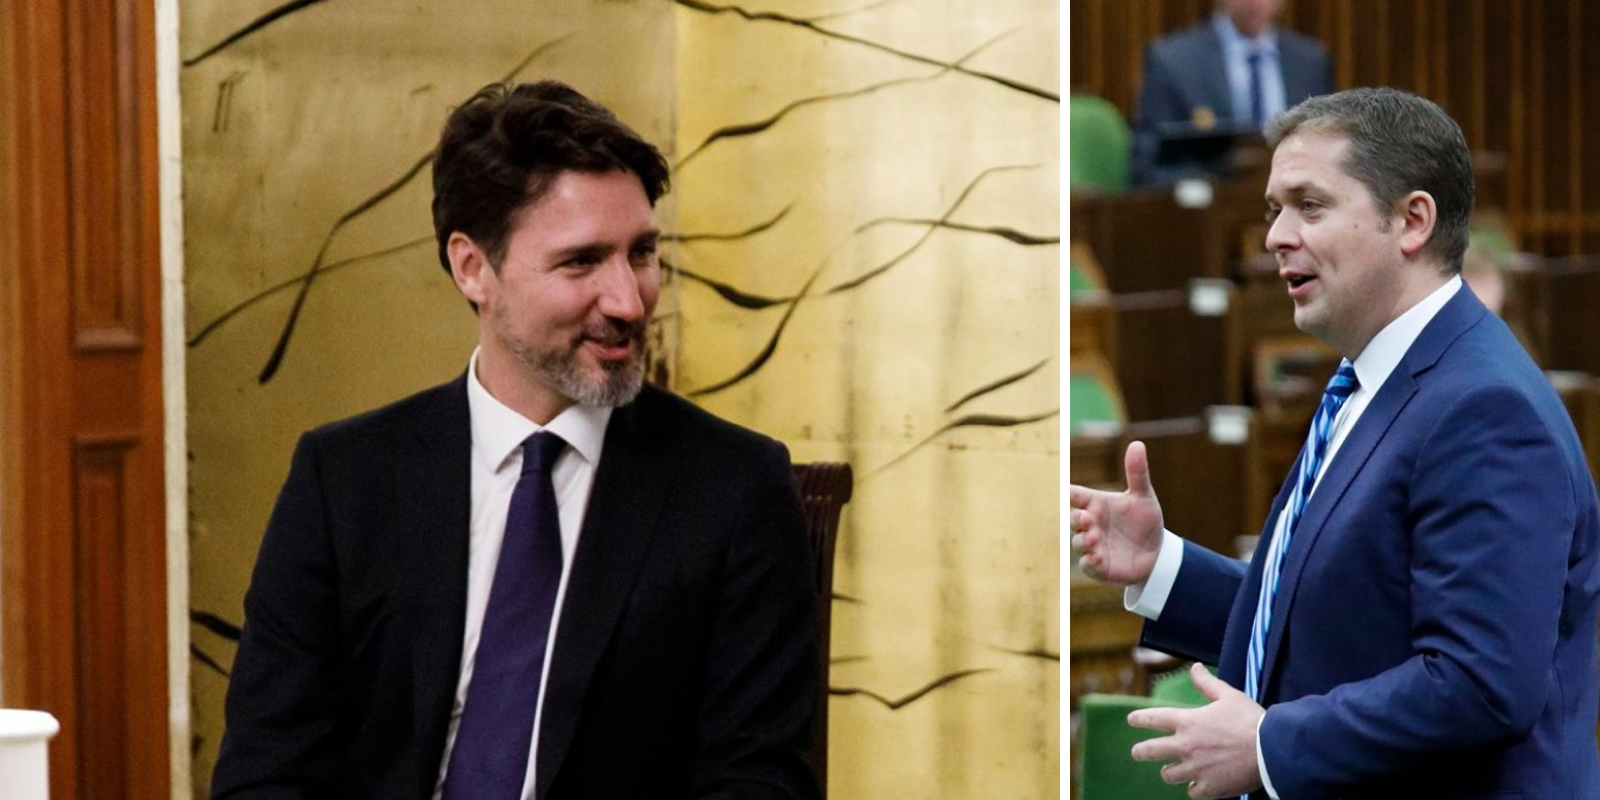 Trudeau skips Scheer's last day as Opposition Leader in House, repeating election night snub